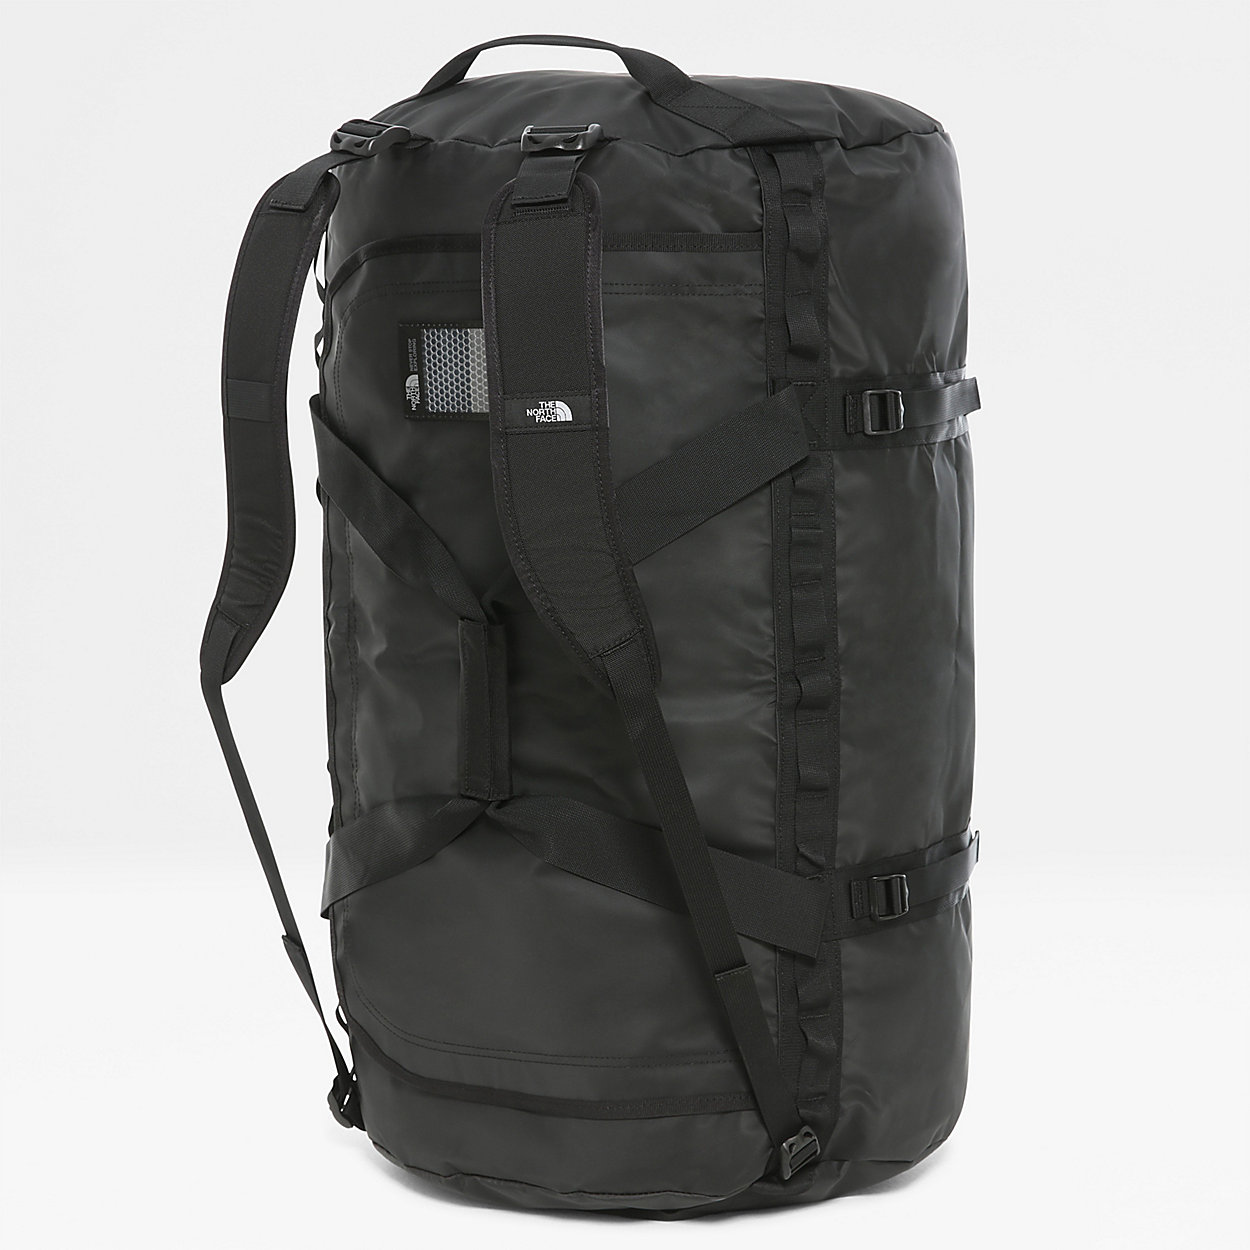 BASE CAMP DUFFEL - EXTRA LARGE